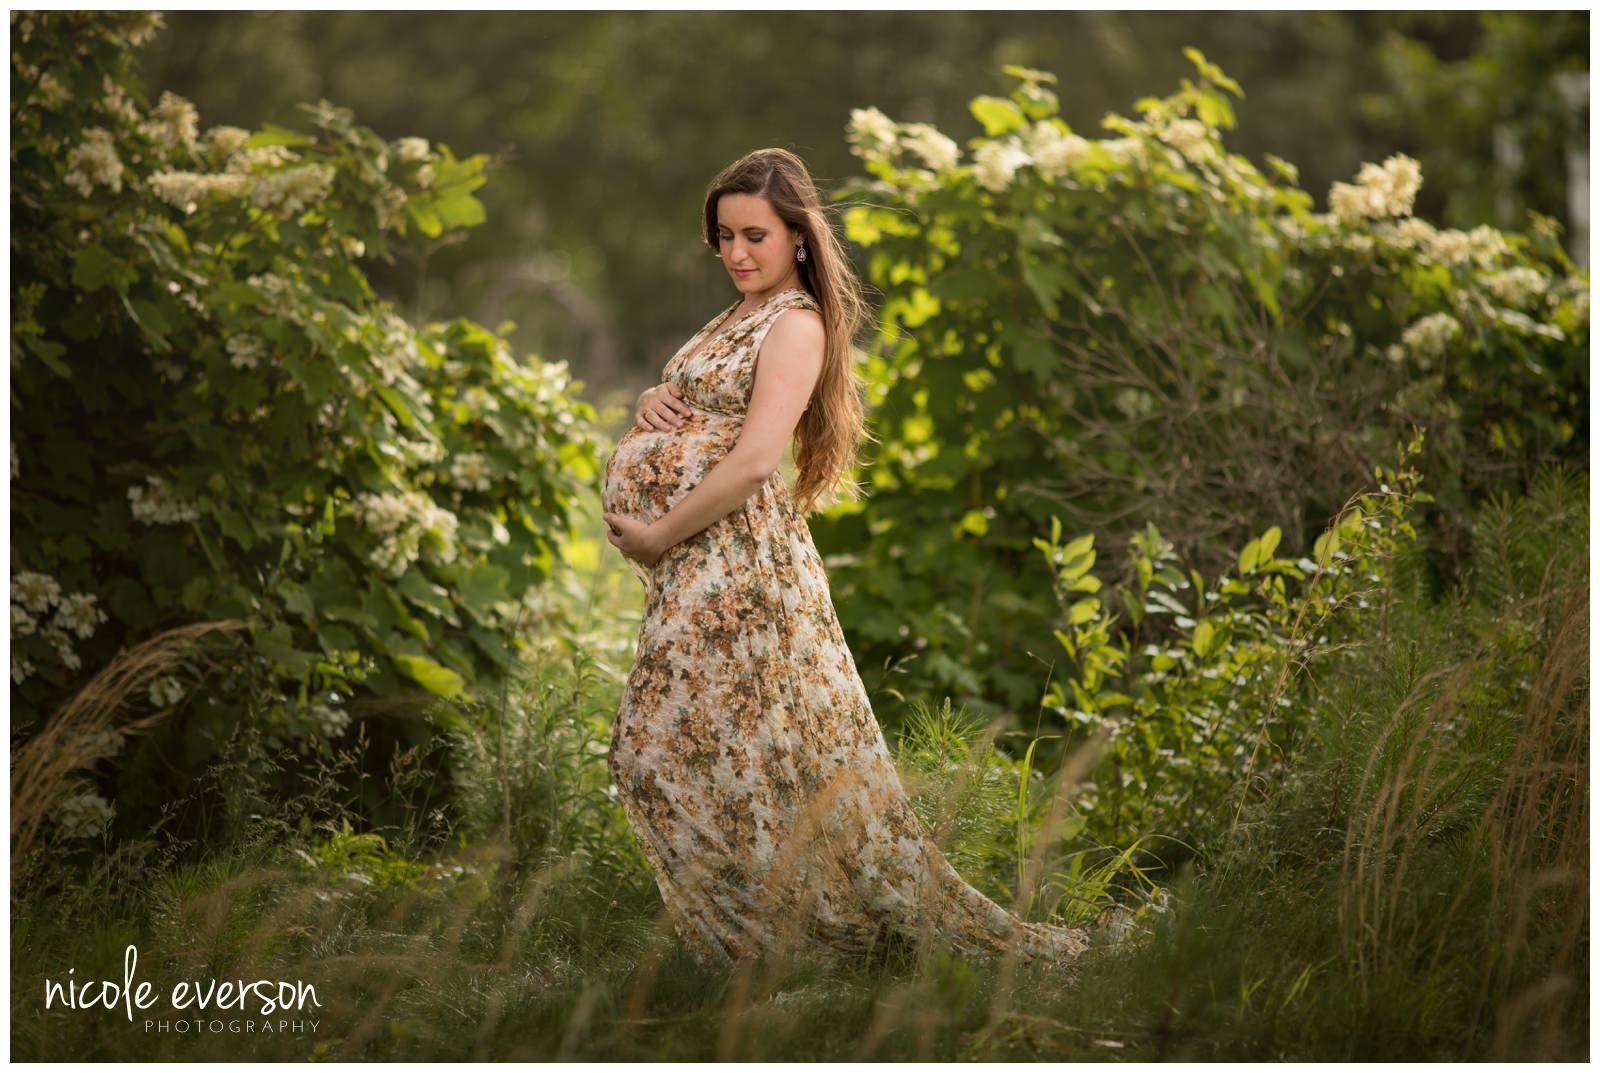 outside Maternity Photographer taken in Tallahassee Florida by Nicole Everson Photography